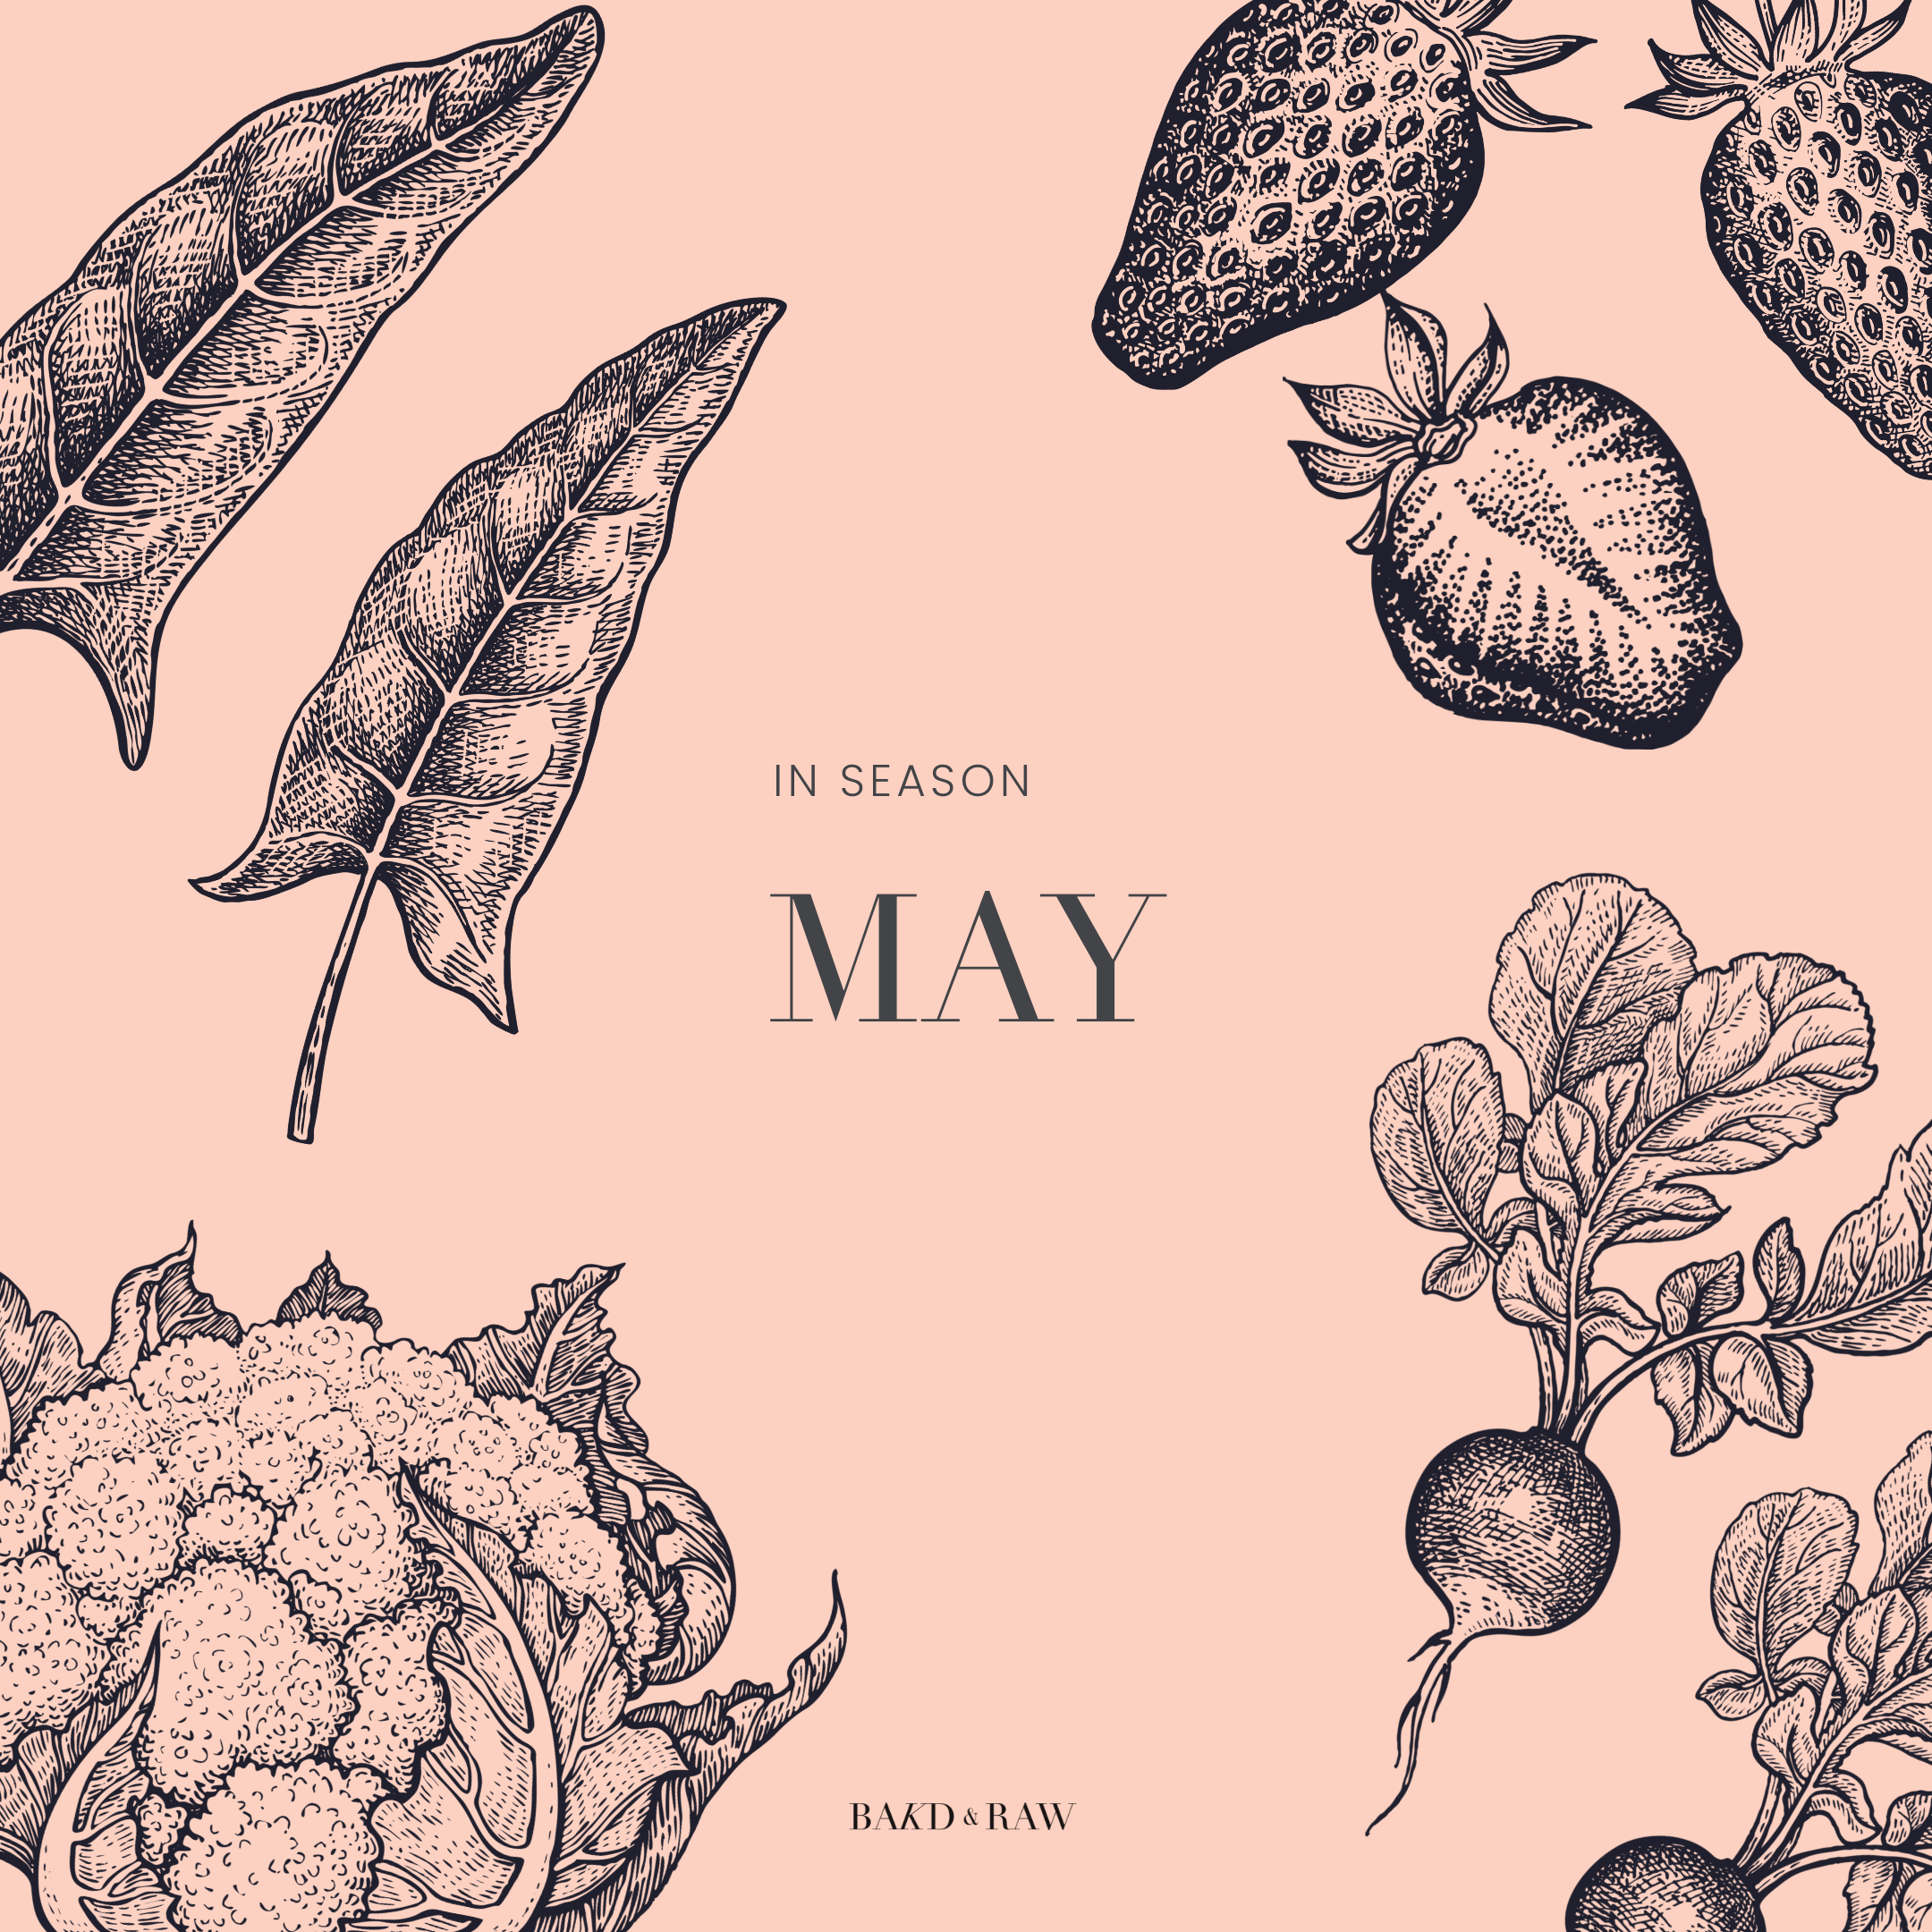 Overview in Season in May in Germany, Saisonkalender by Bakd&Raw